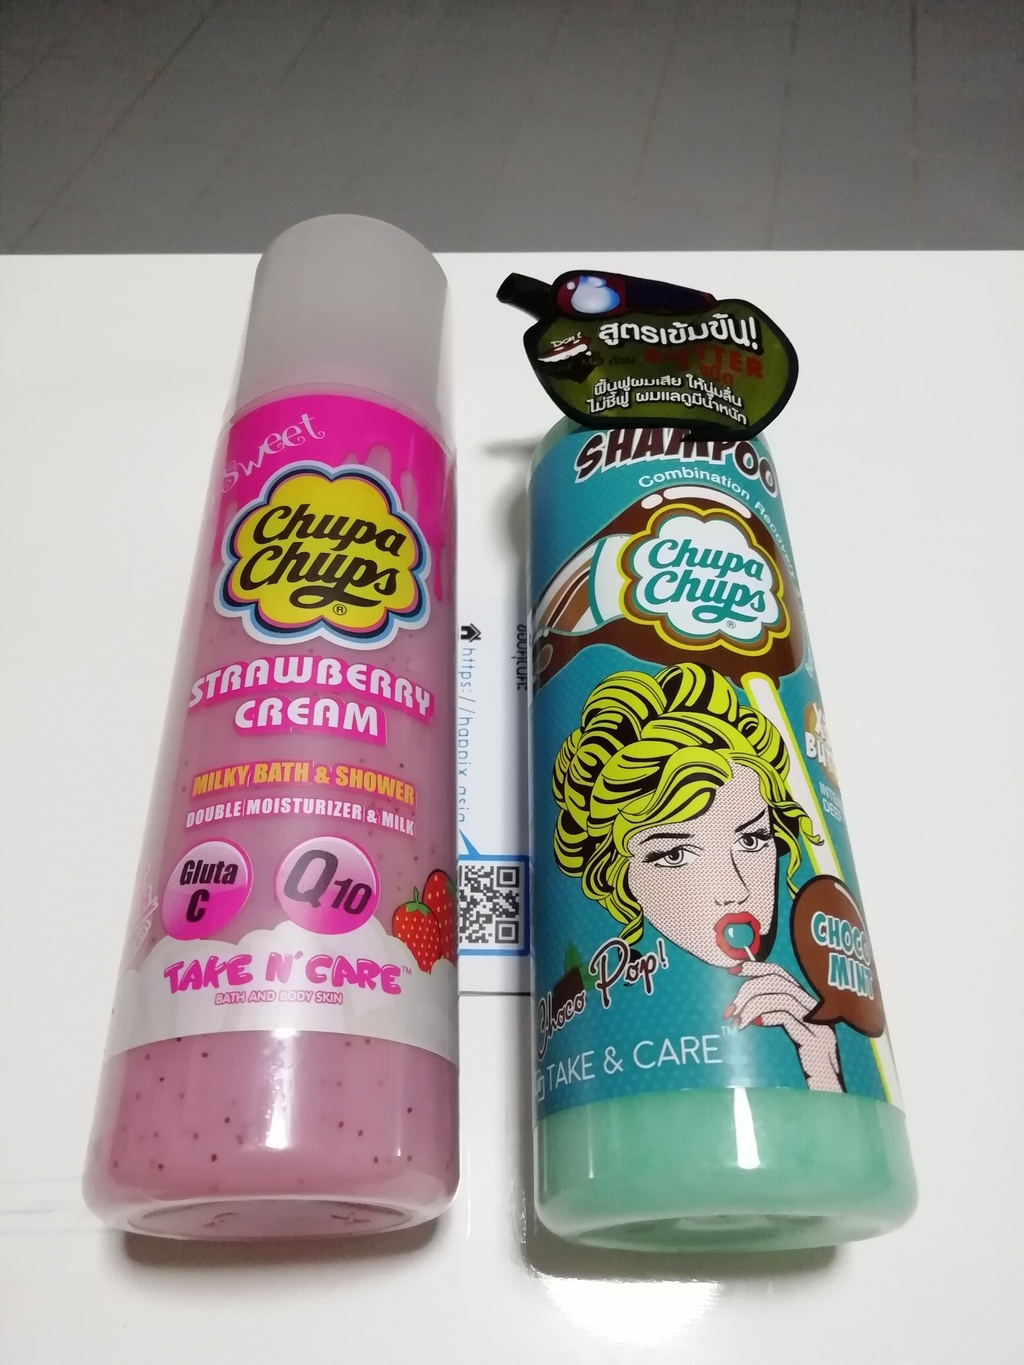 Choco pop Choco mint shampoo + Strawberry Cream Milky Bath